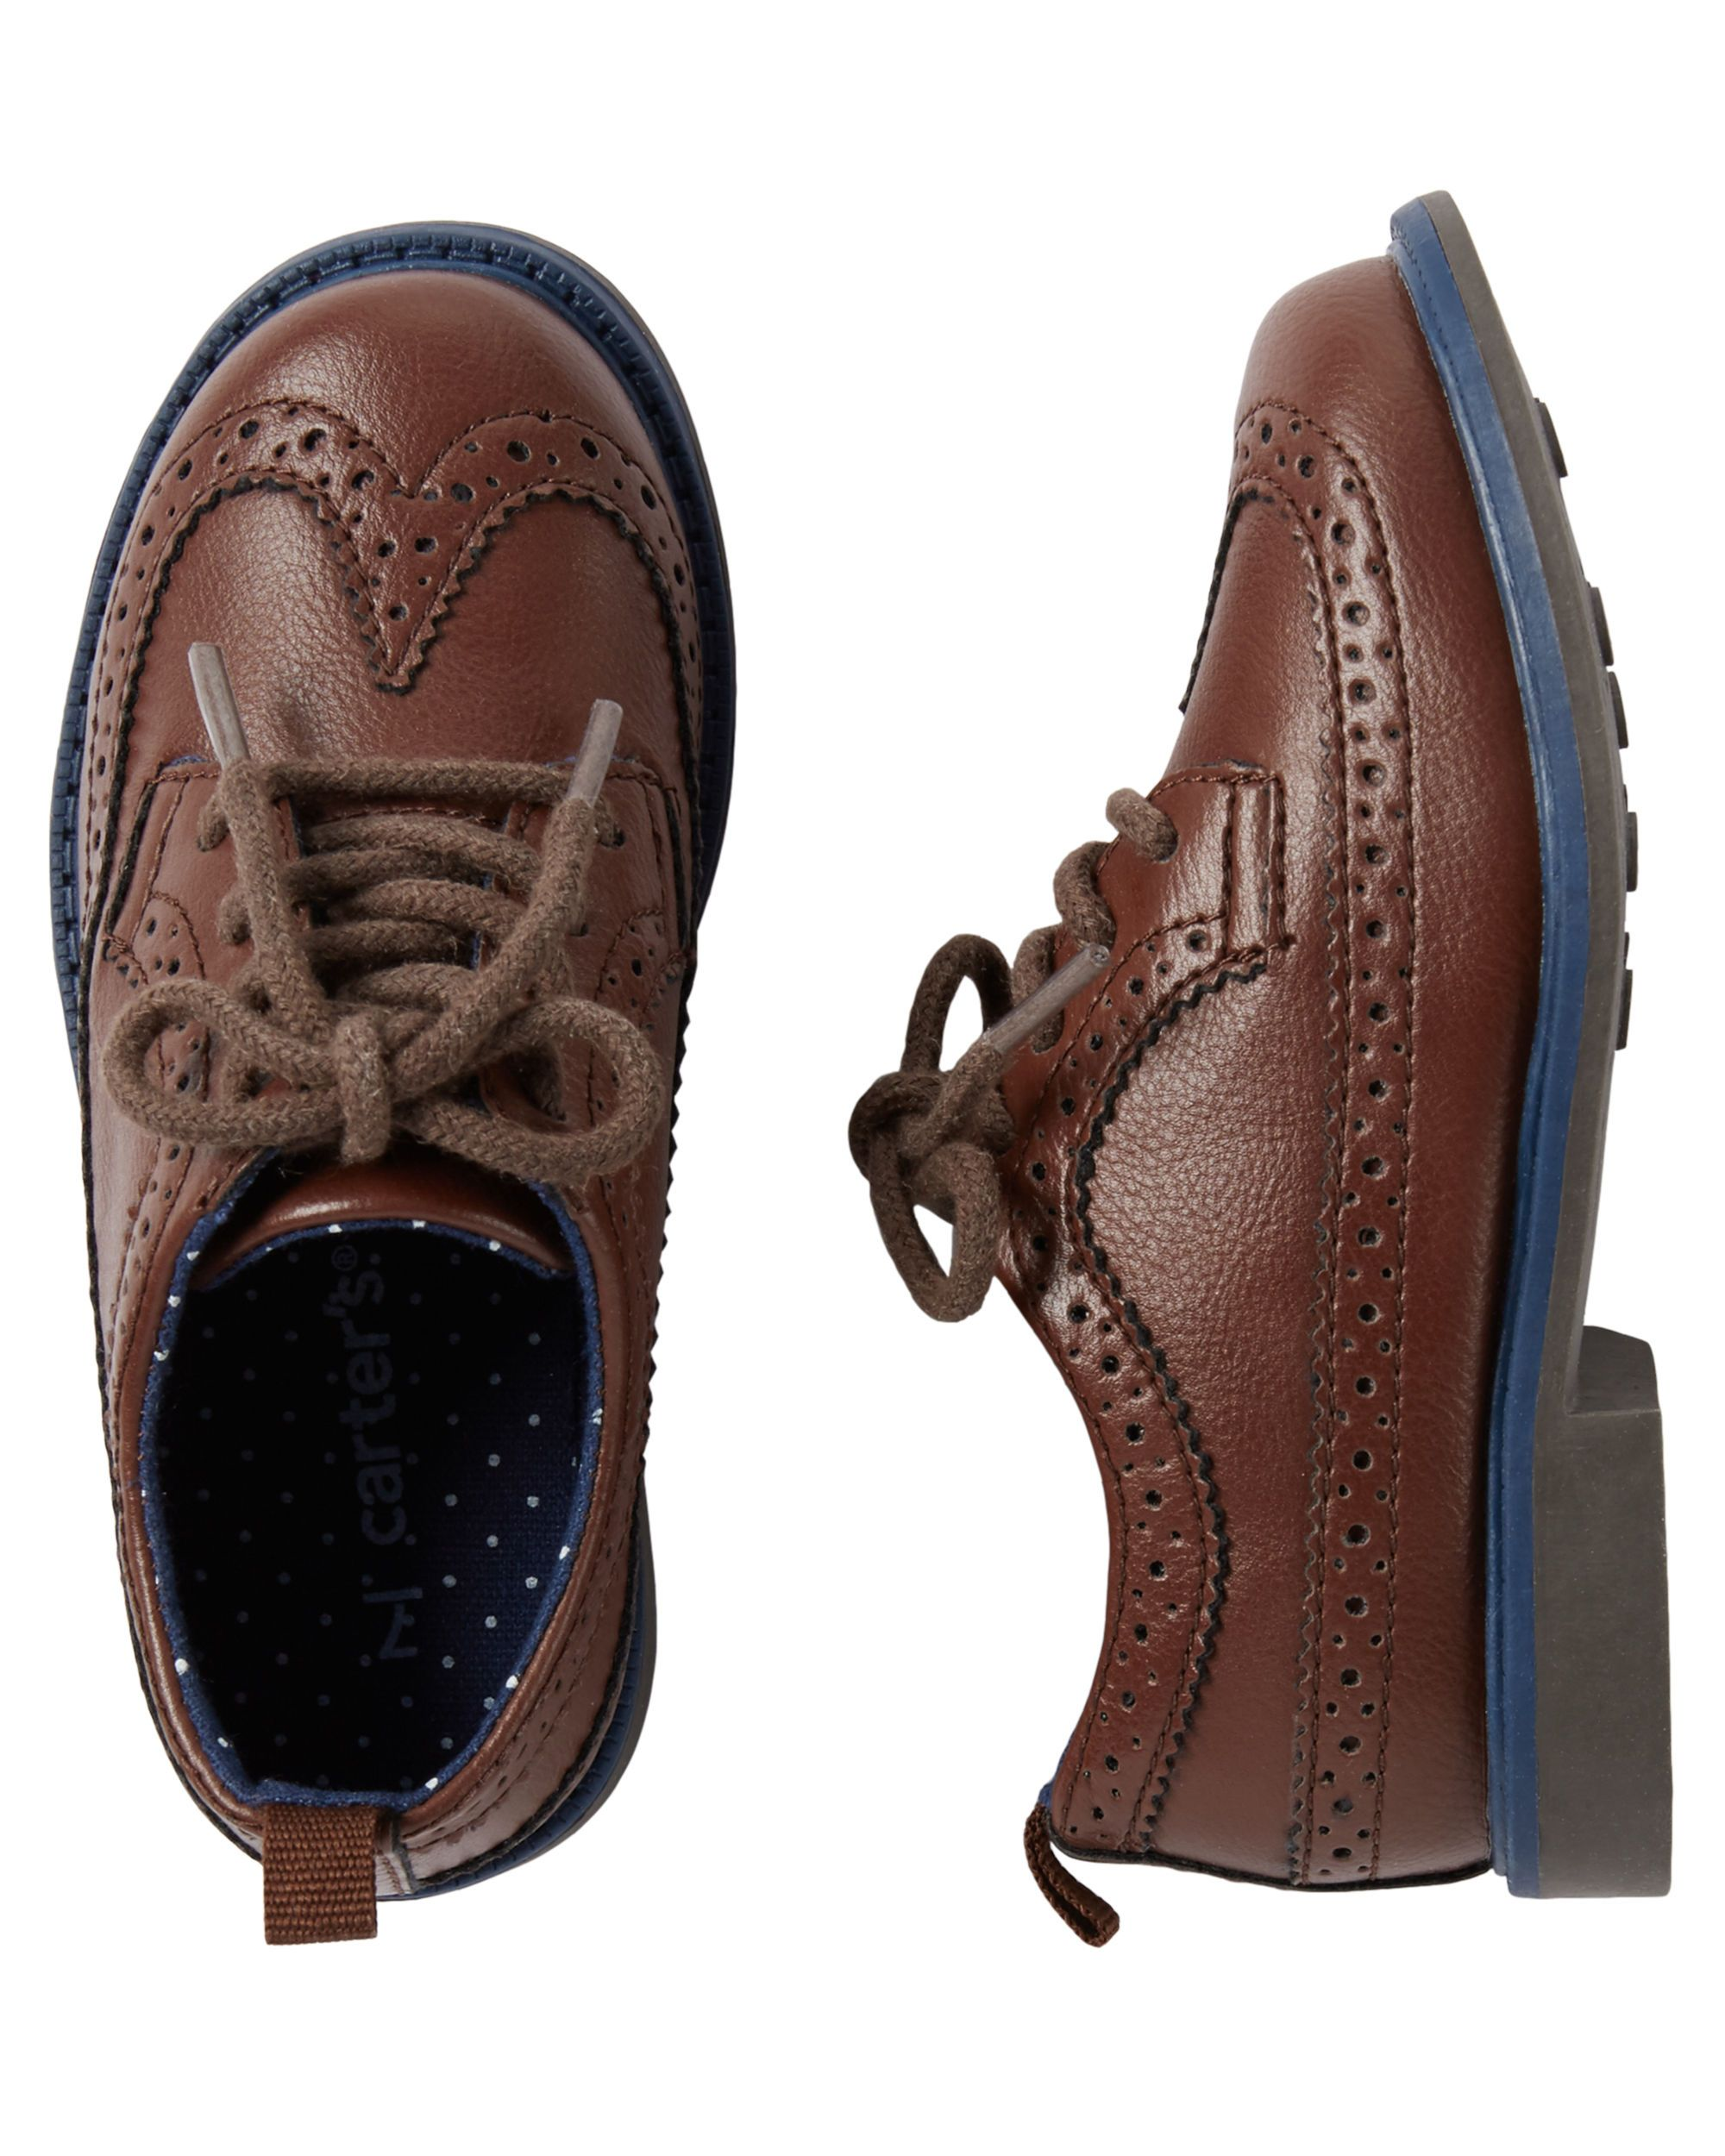 7e7f661f66ec Baby Boy Carter s Oxford Dress Shoes from OshKosh B gosh. Shop clothing    accessories from a trusted name in kids